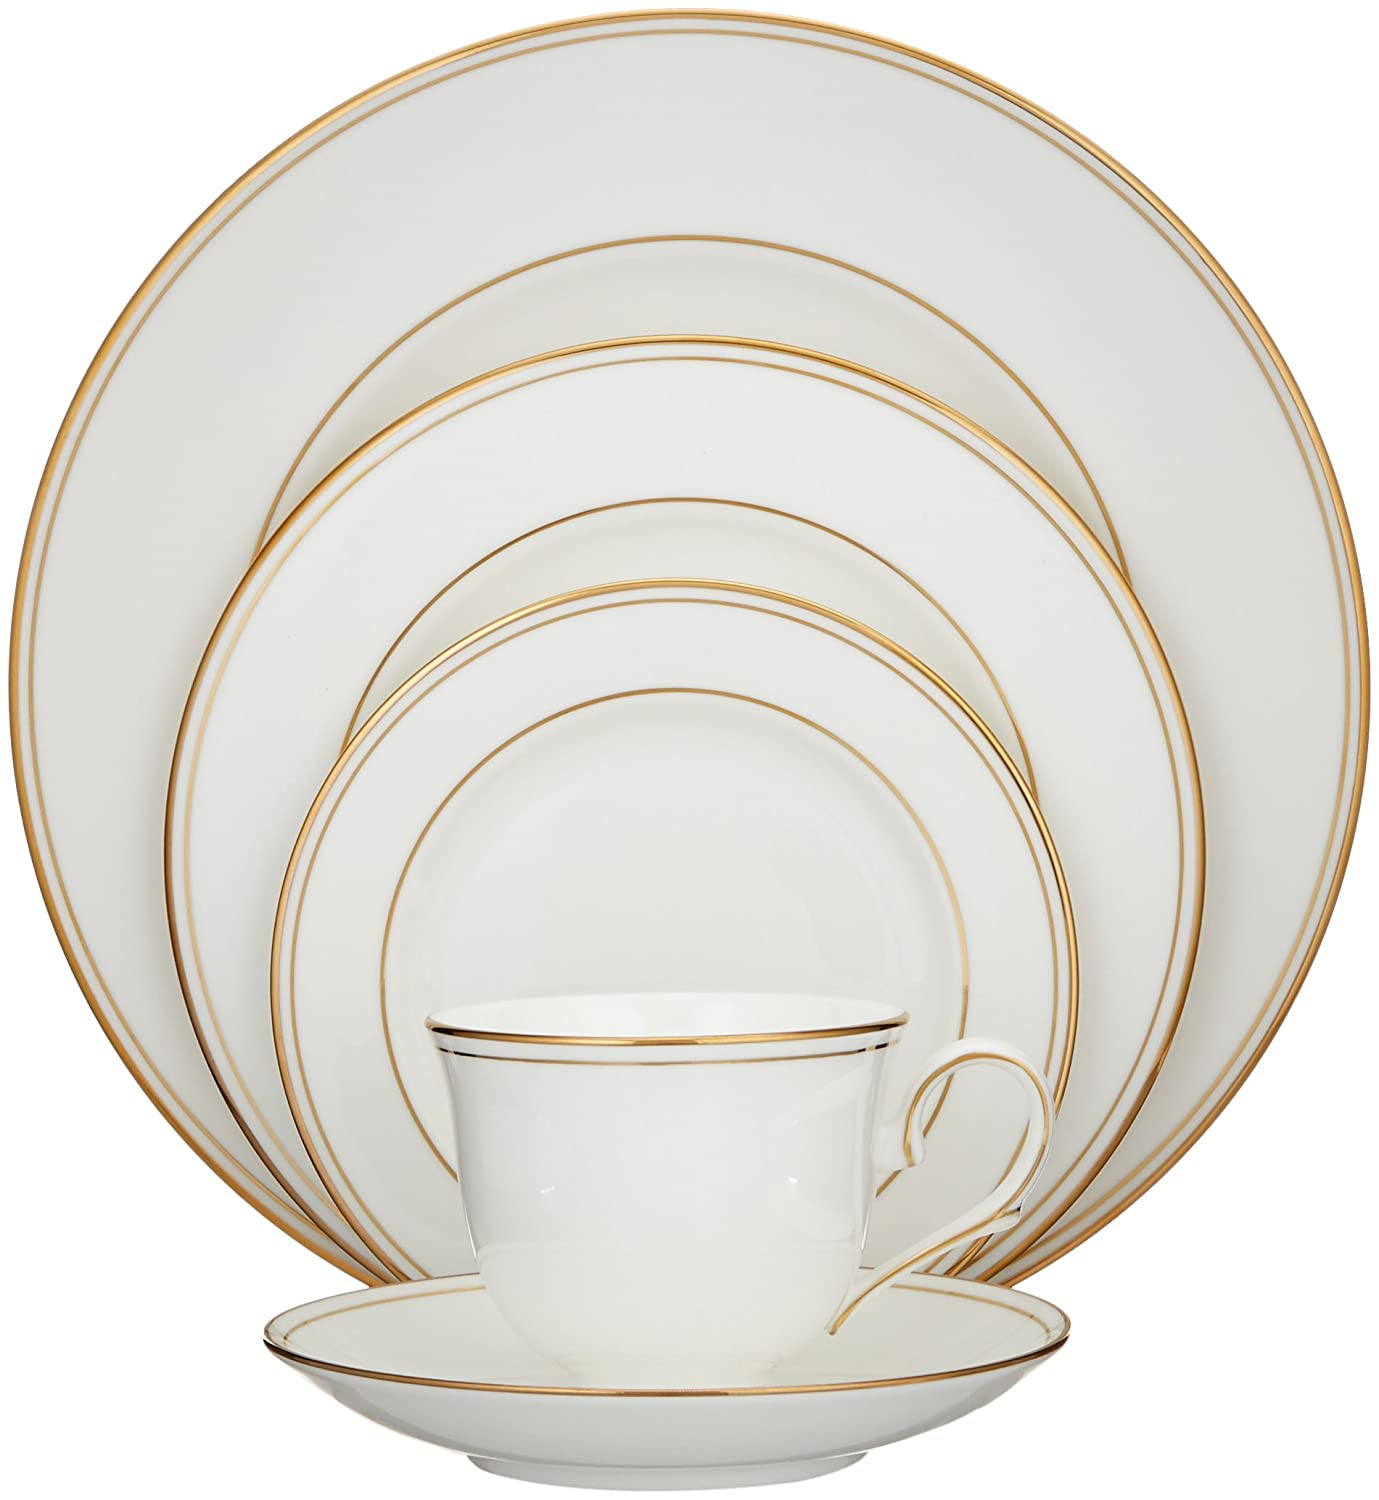 Lenox Federal Gold Bone China 5-Piece Place Setting, Service for 1